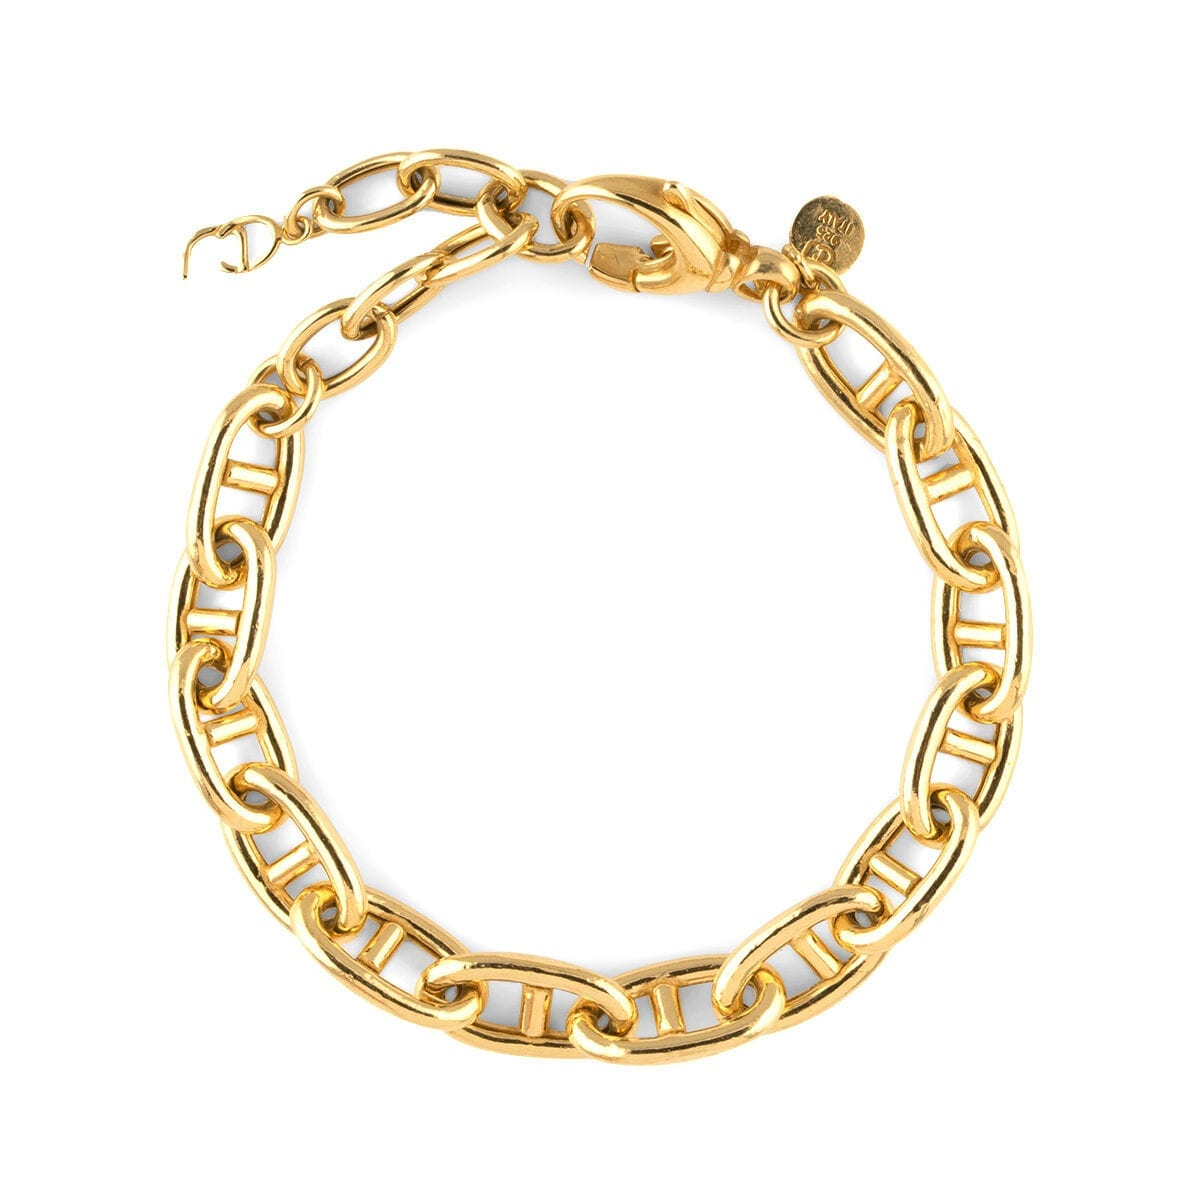 Victory-chain-brace-gold